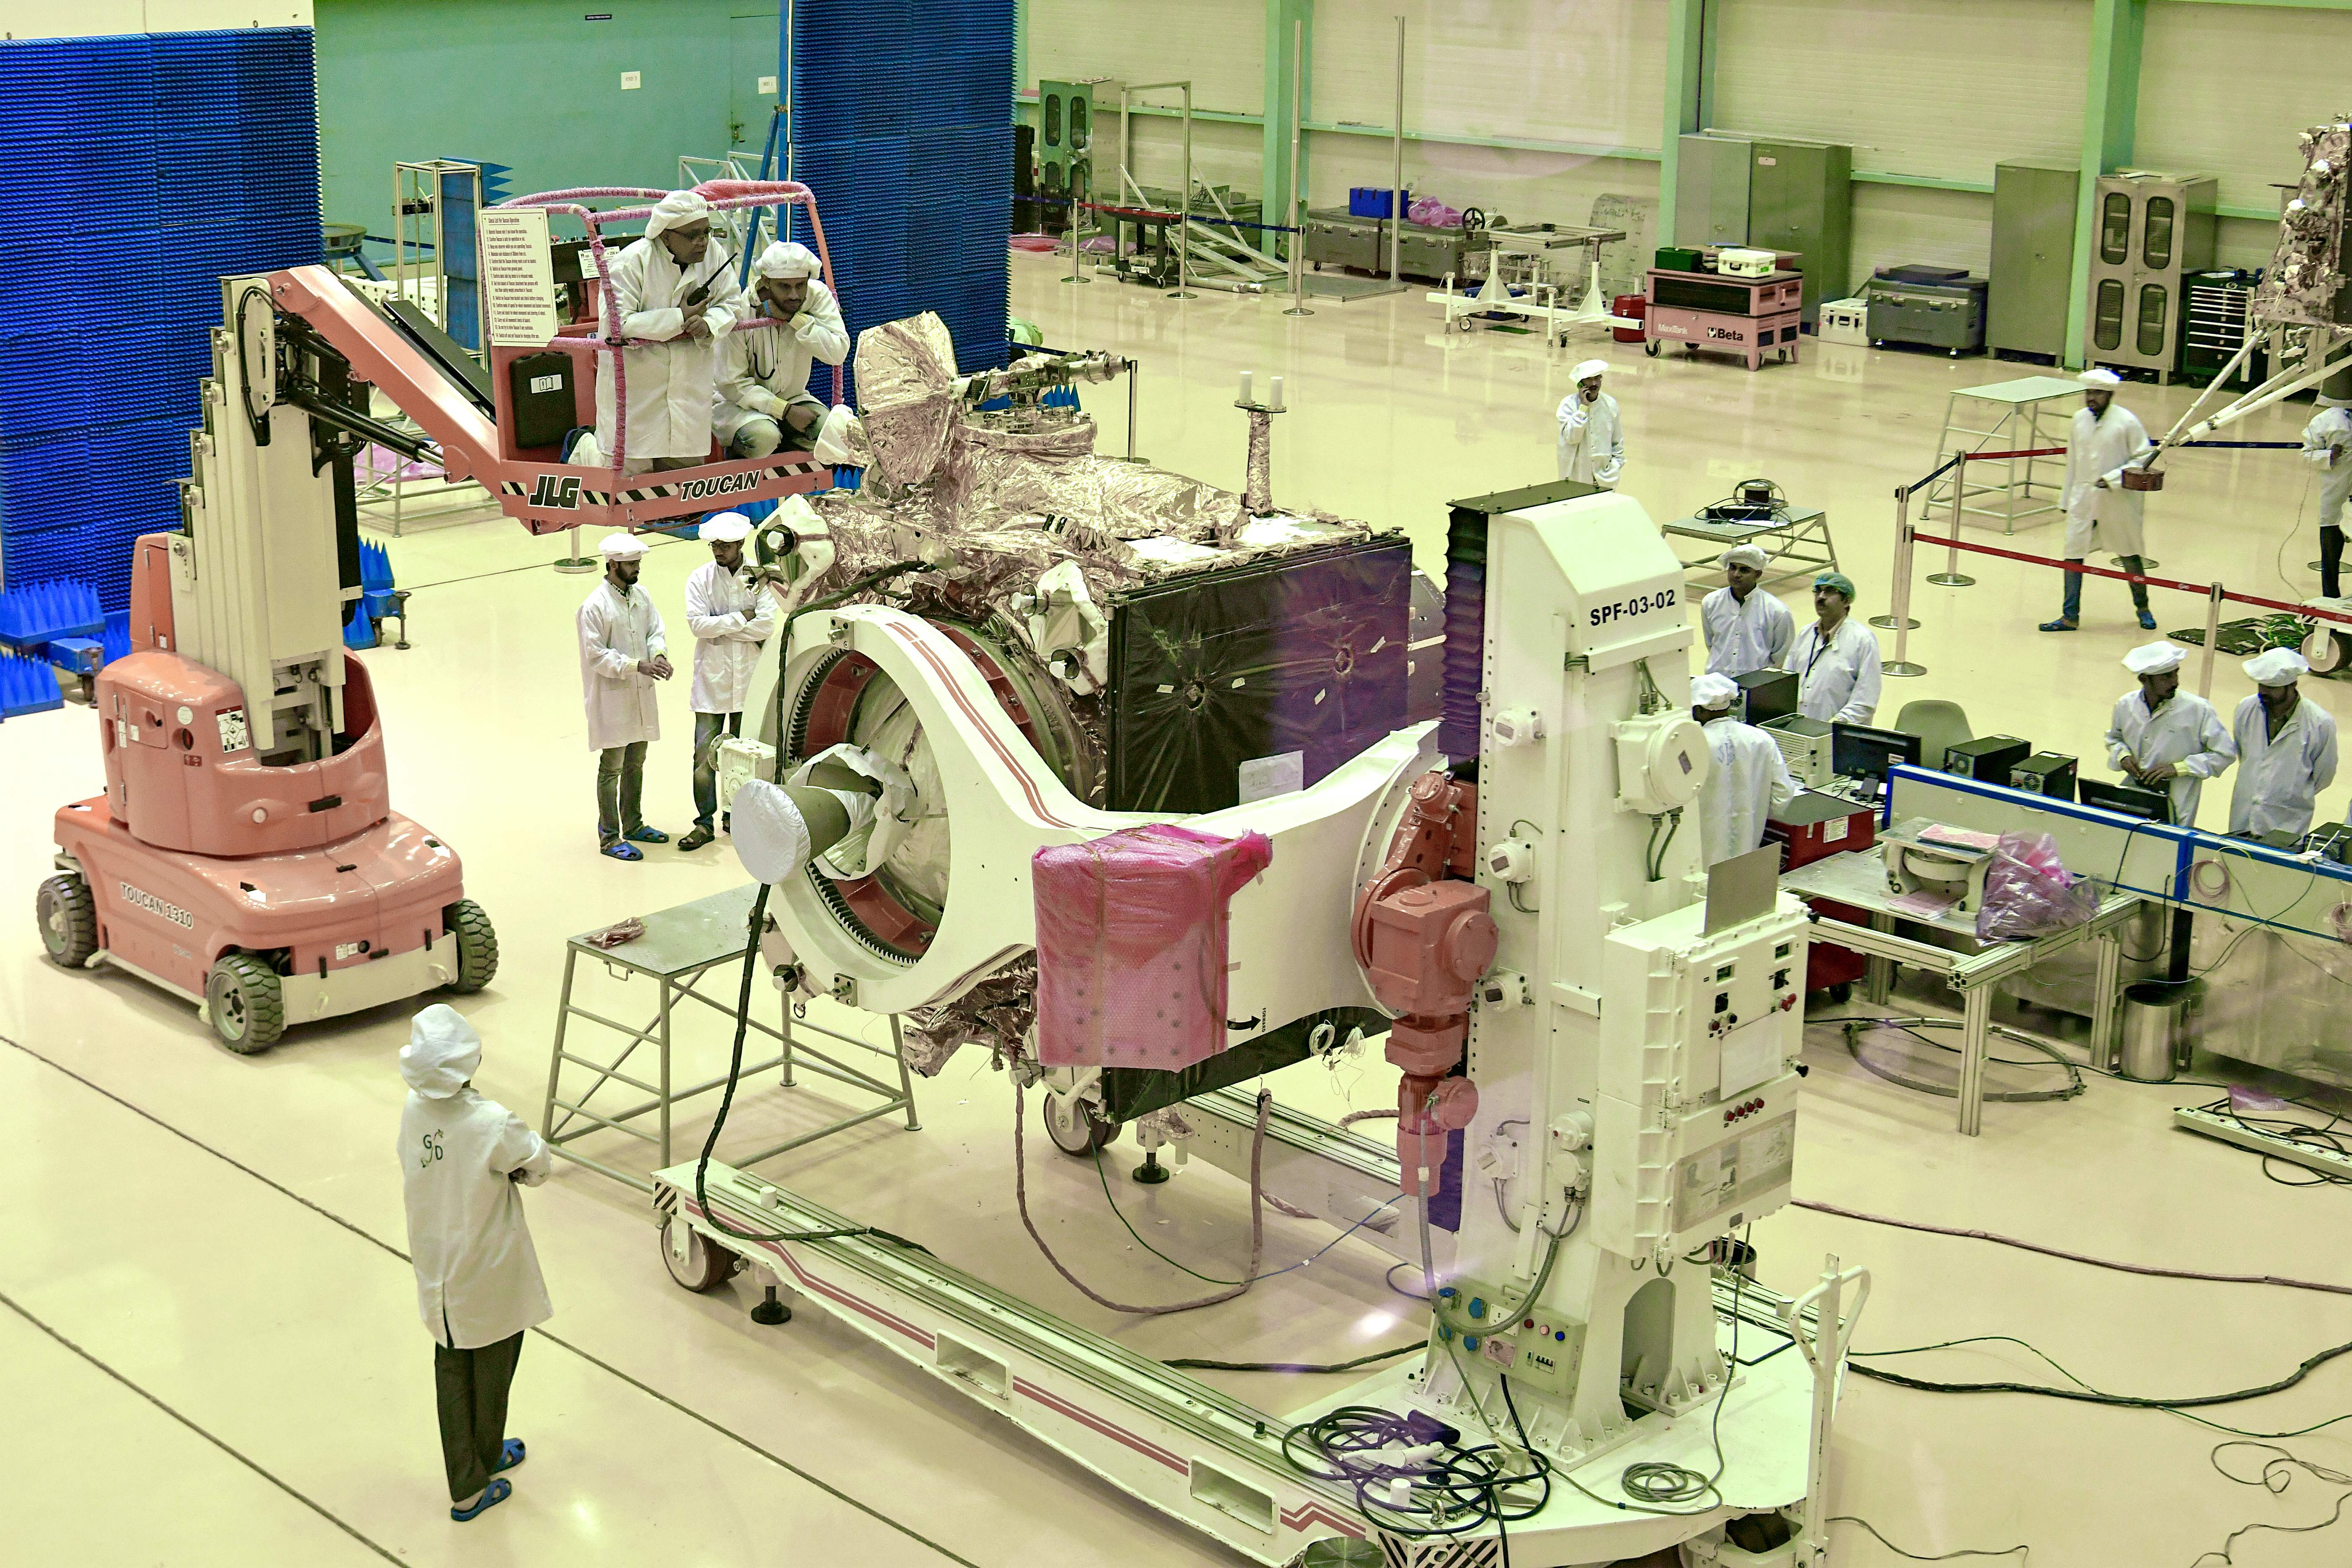 India prepares to land rover on moon in global space race thumbnail